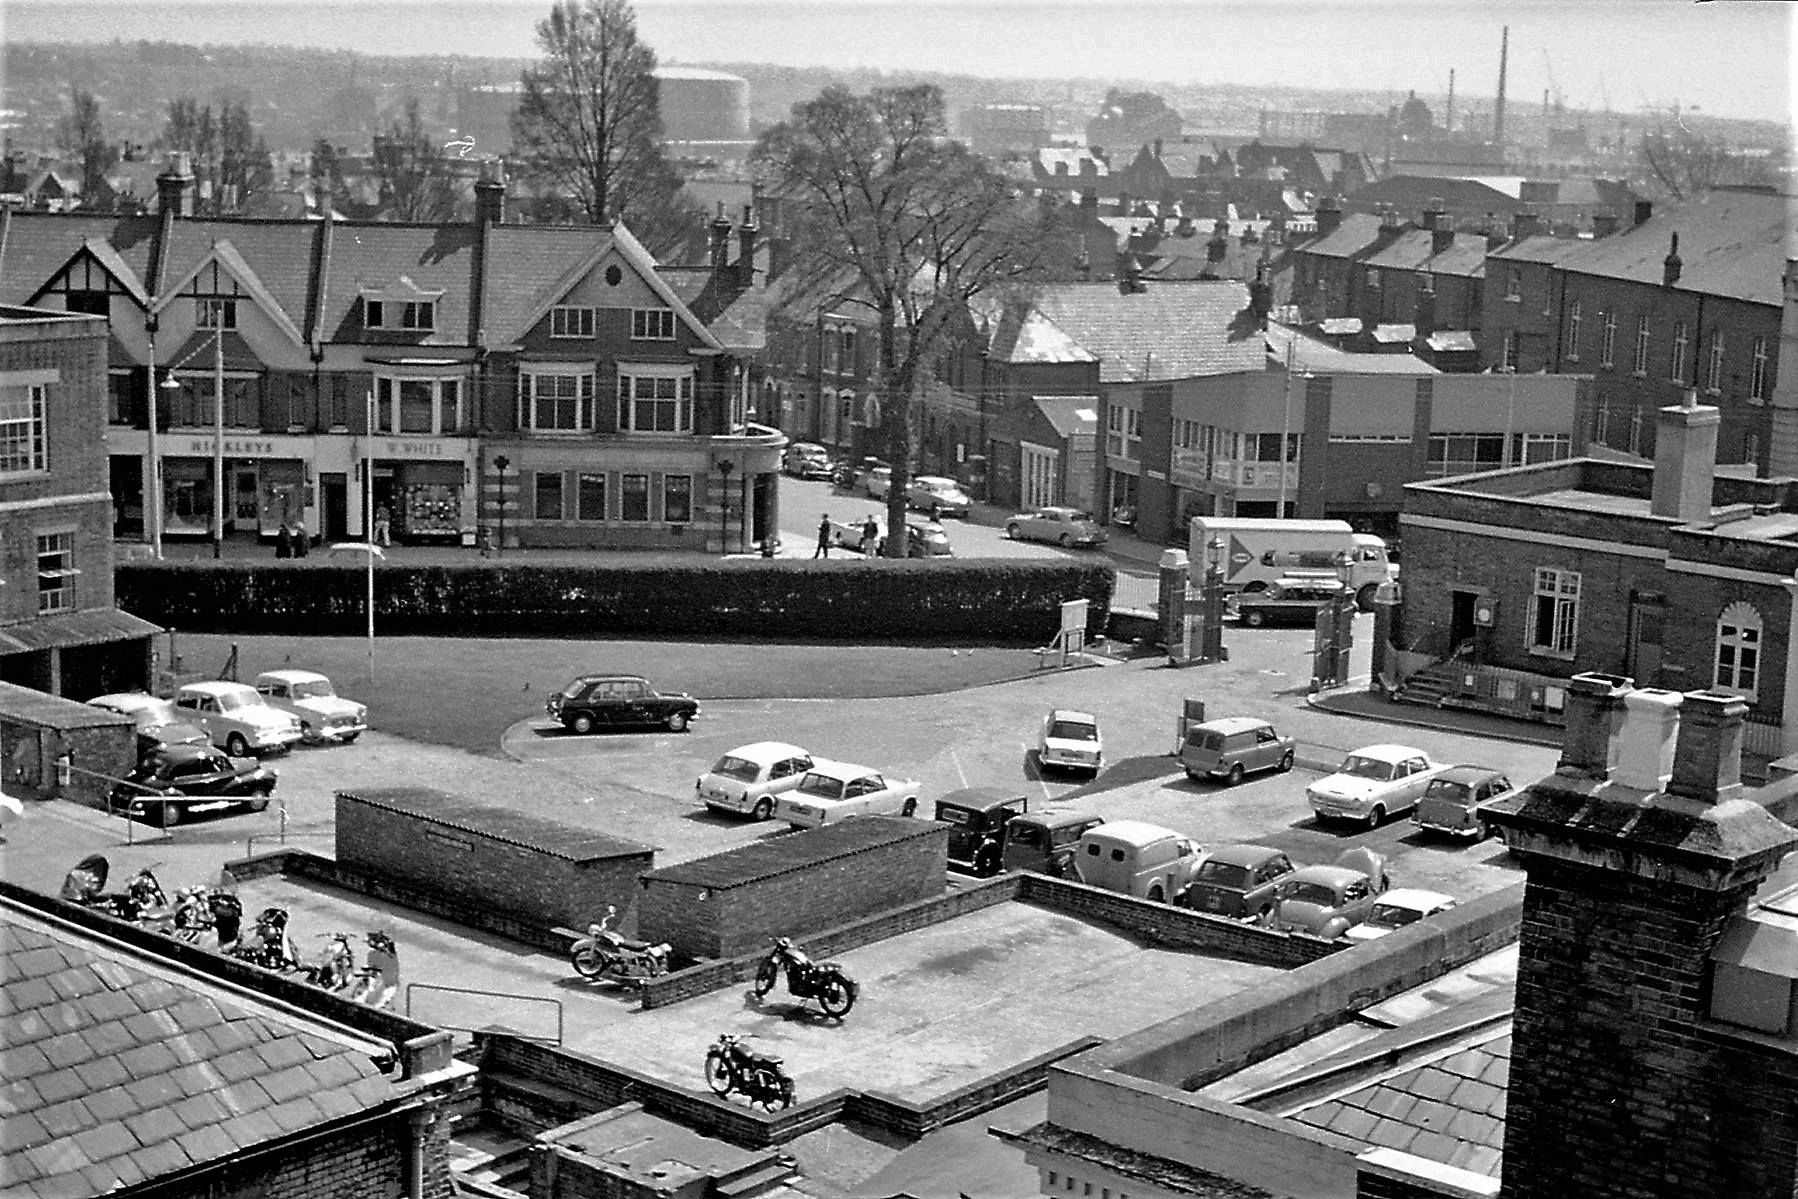 View from the roof of London Road in 1967